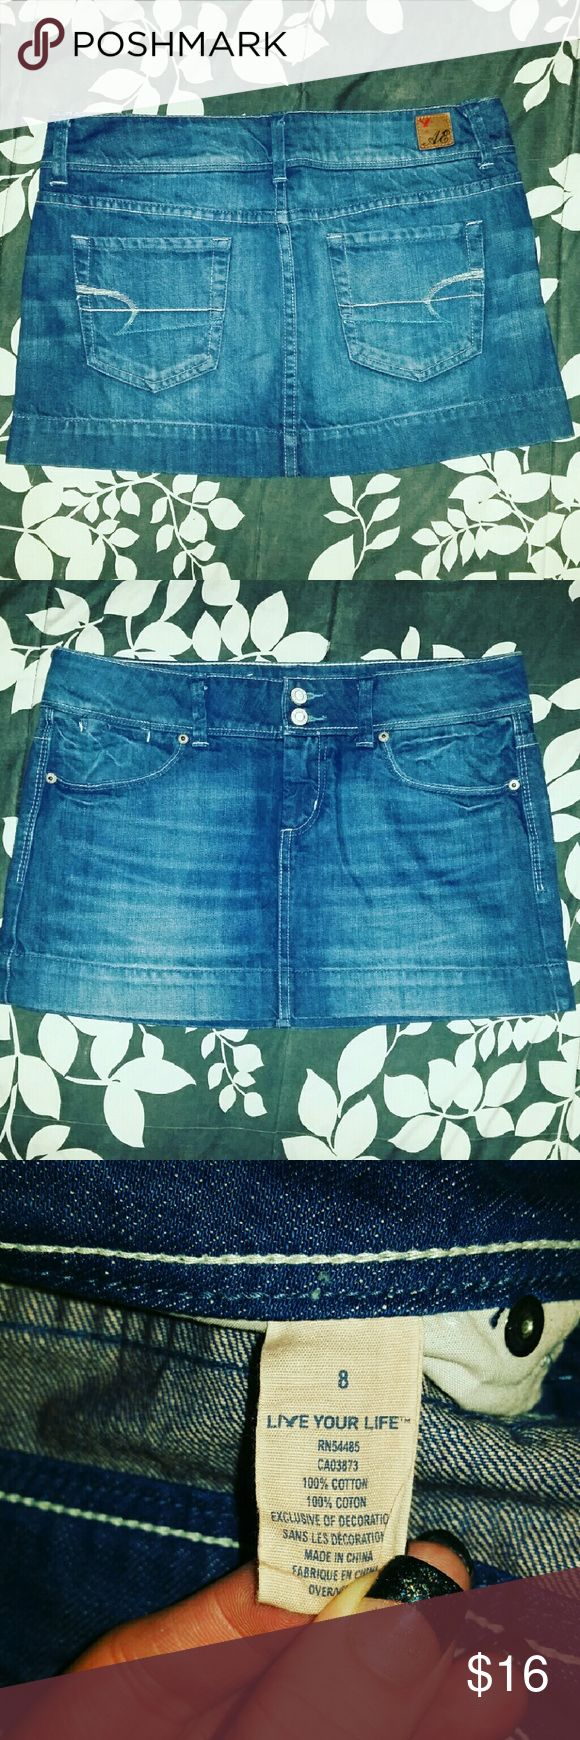 **American Eagle denim skirt** A cute Jean skirt is a must-have for every girl! EUC and totes adorbs! ;) Throw this on with a white tank and some wedges and you are GOOD TO GO and oh so cute!! Or if your feelin' extra frisky, throw some cowgirl boots and a cowgirl hat into the mix instead and a cute flannel over that white tank and BOOM! You got yourself a bad to the bone ensemble! ;) ;) American Eagle Outfitters Skirts Mini